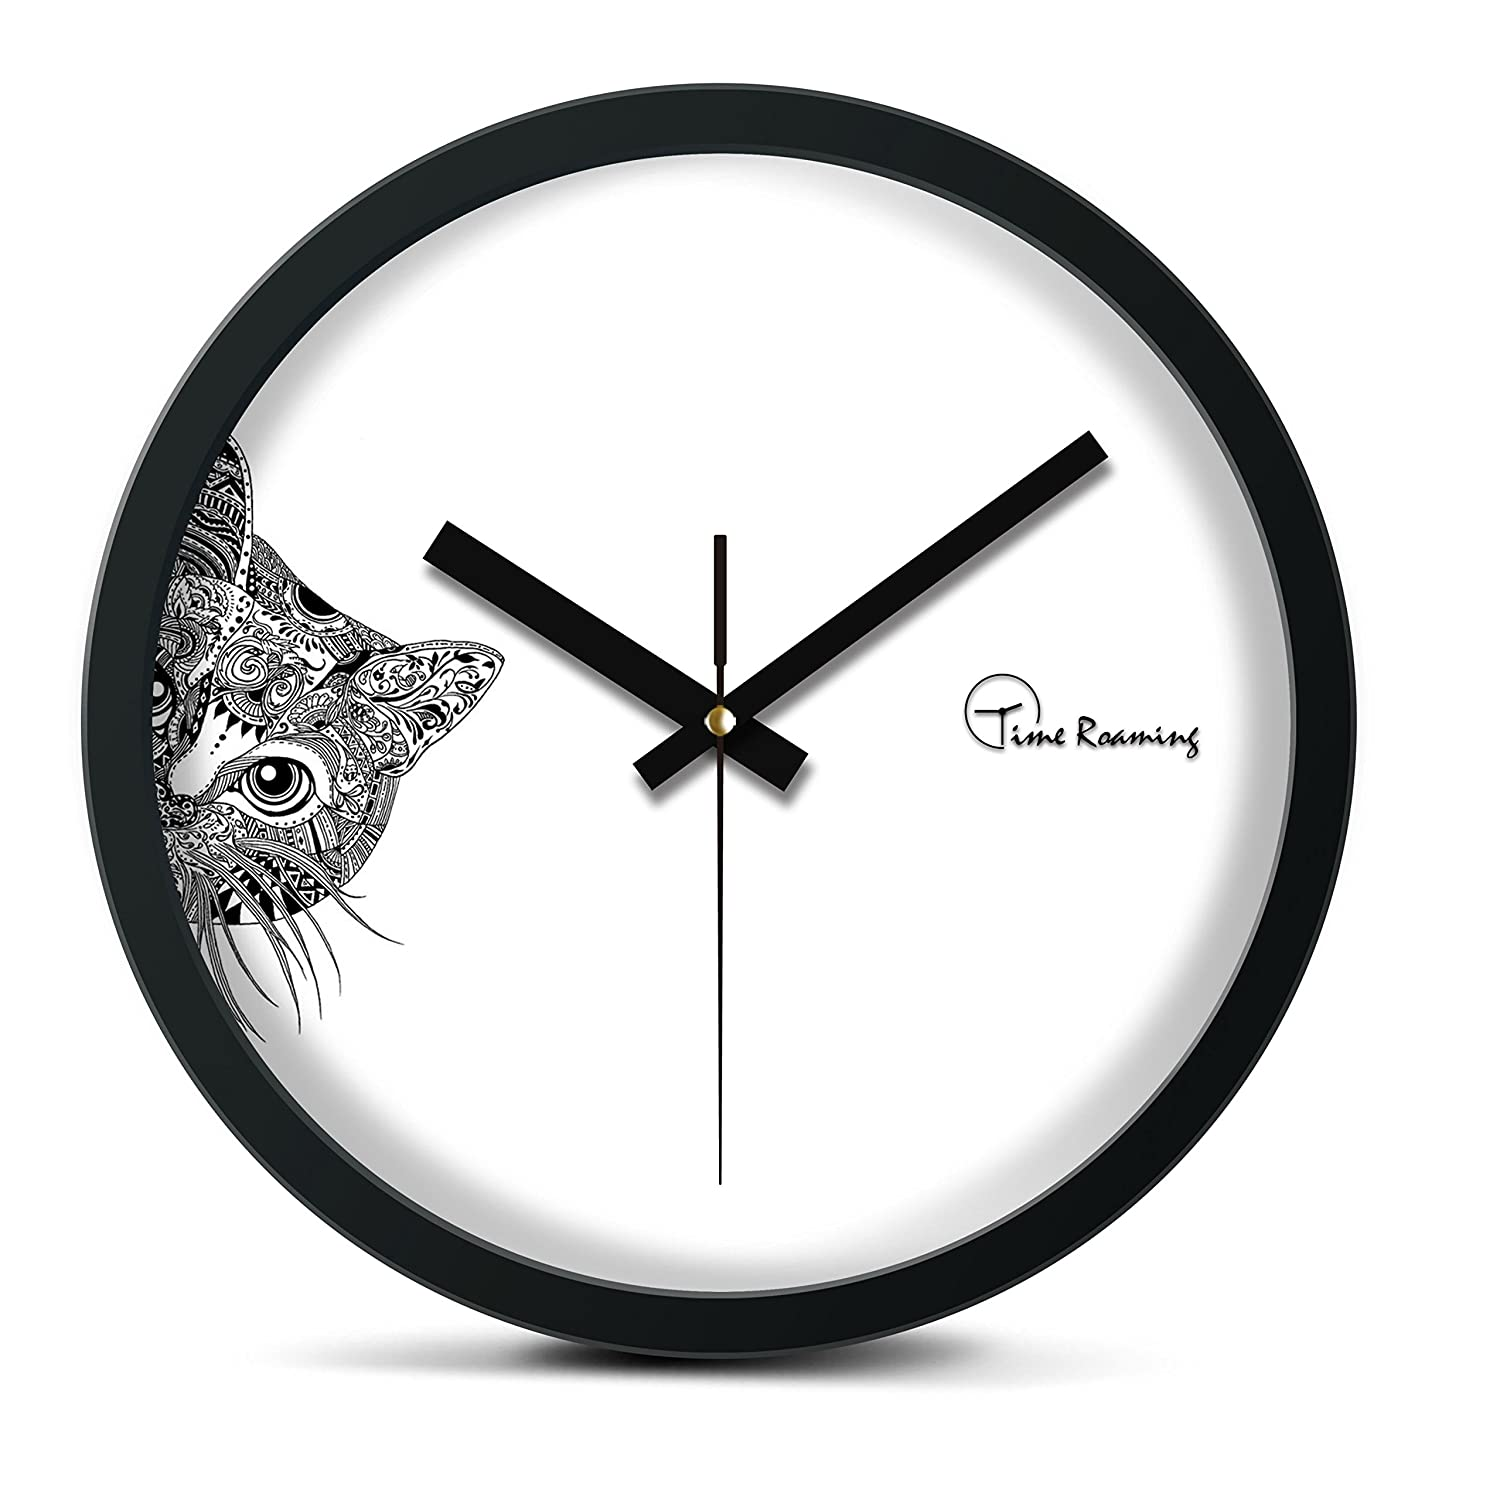 Amazon time roaming 10 modern decor silent metal wall clock amazon time roaming 10 modern decor silent metal wall clock peep cat home kitchen amipublicfo Gallery